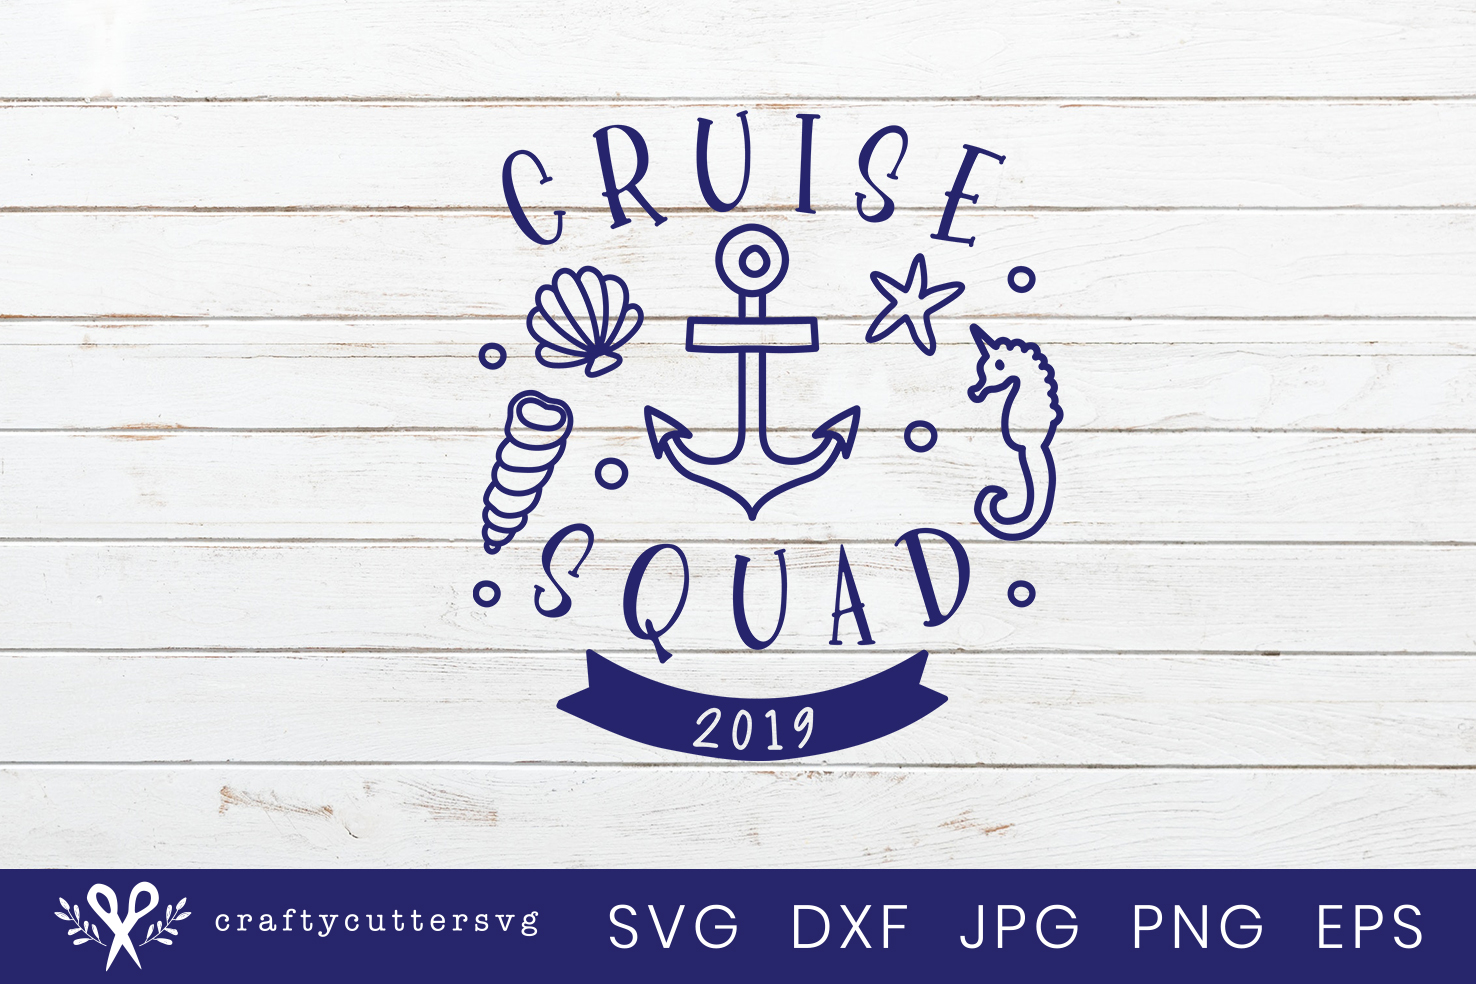 Cruise squad 2019 Svg Cut File Anchor Seahorse Clipart example image 2